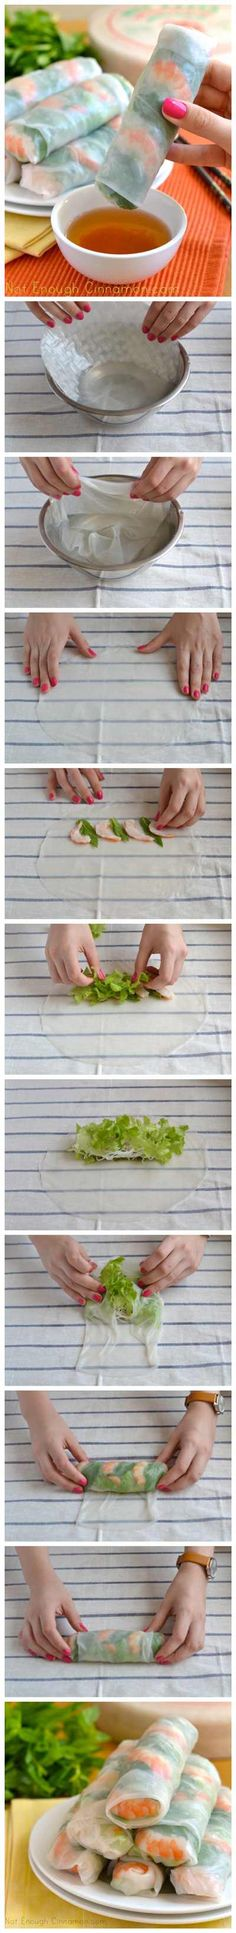 Vietnamese Fresh Spring Rolls Discovered last fall, they are so delicious, reasonably easy to make and healthy too! Summer Rolls, Spring Rolls, Vietnamese Recipes, Asian Recipes, Vegetarian Recipes, Cooking Recipes, Healthy Recipes, Eat Better, Cuisine Diverse